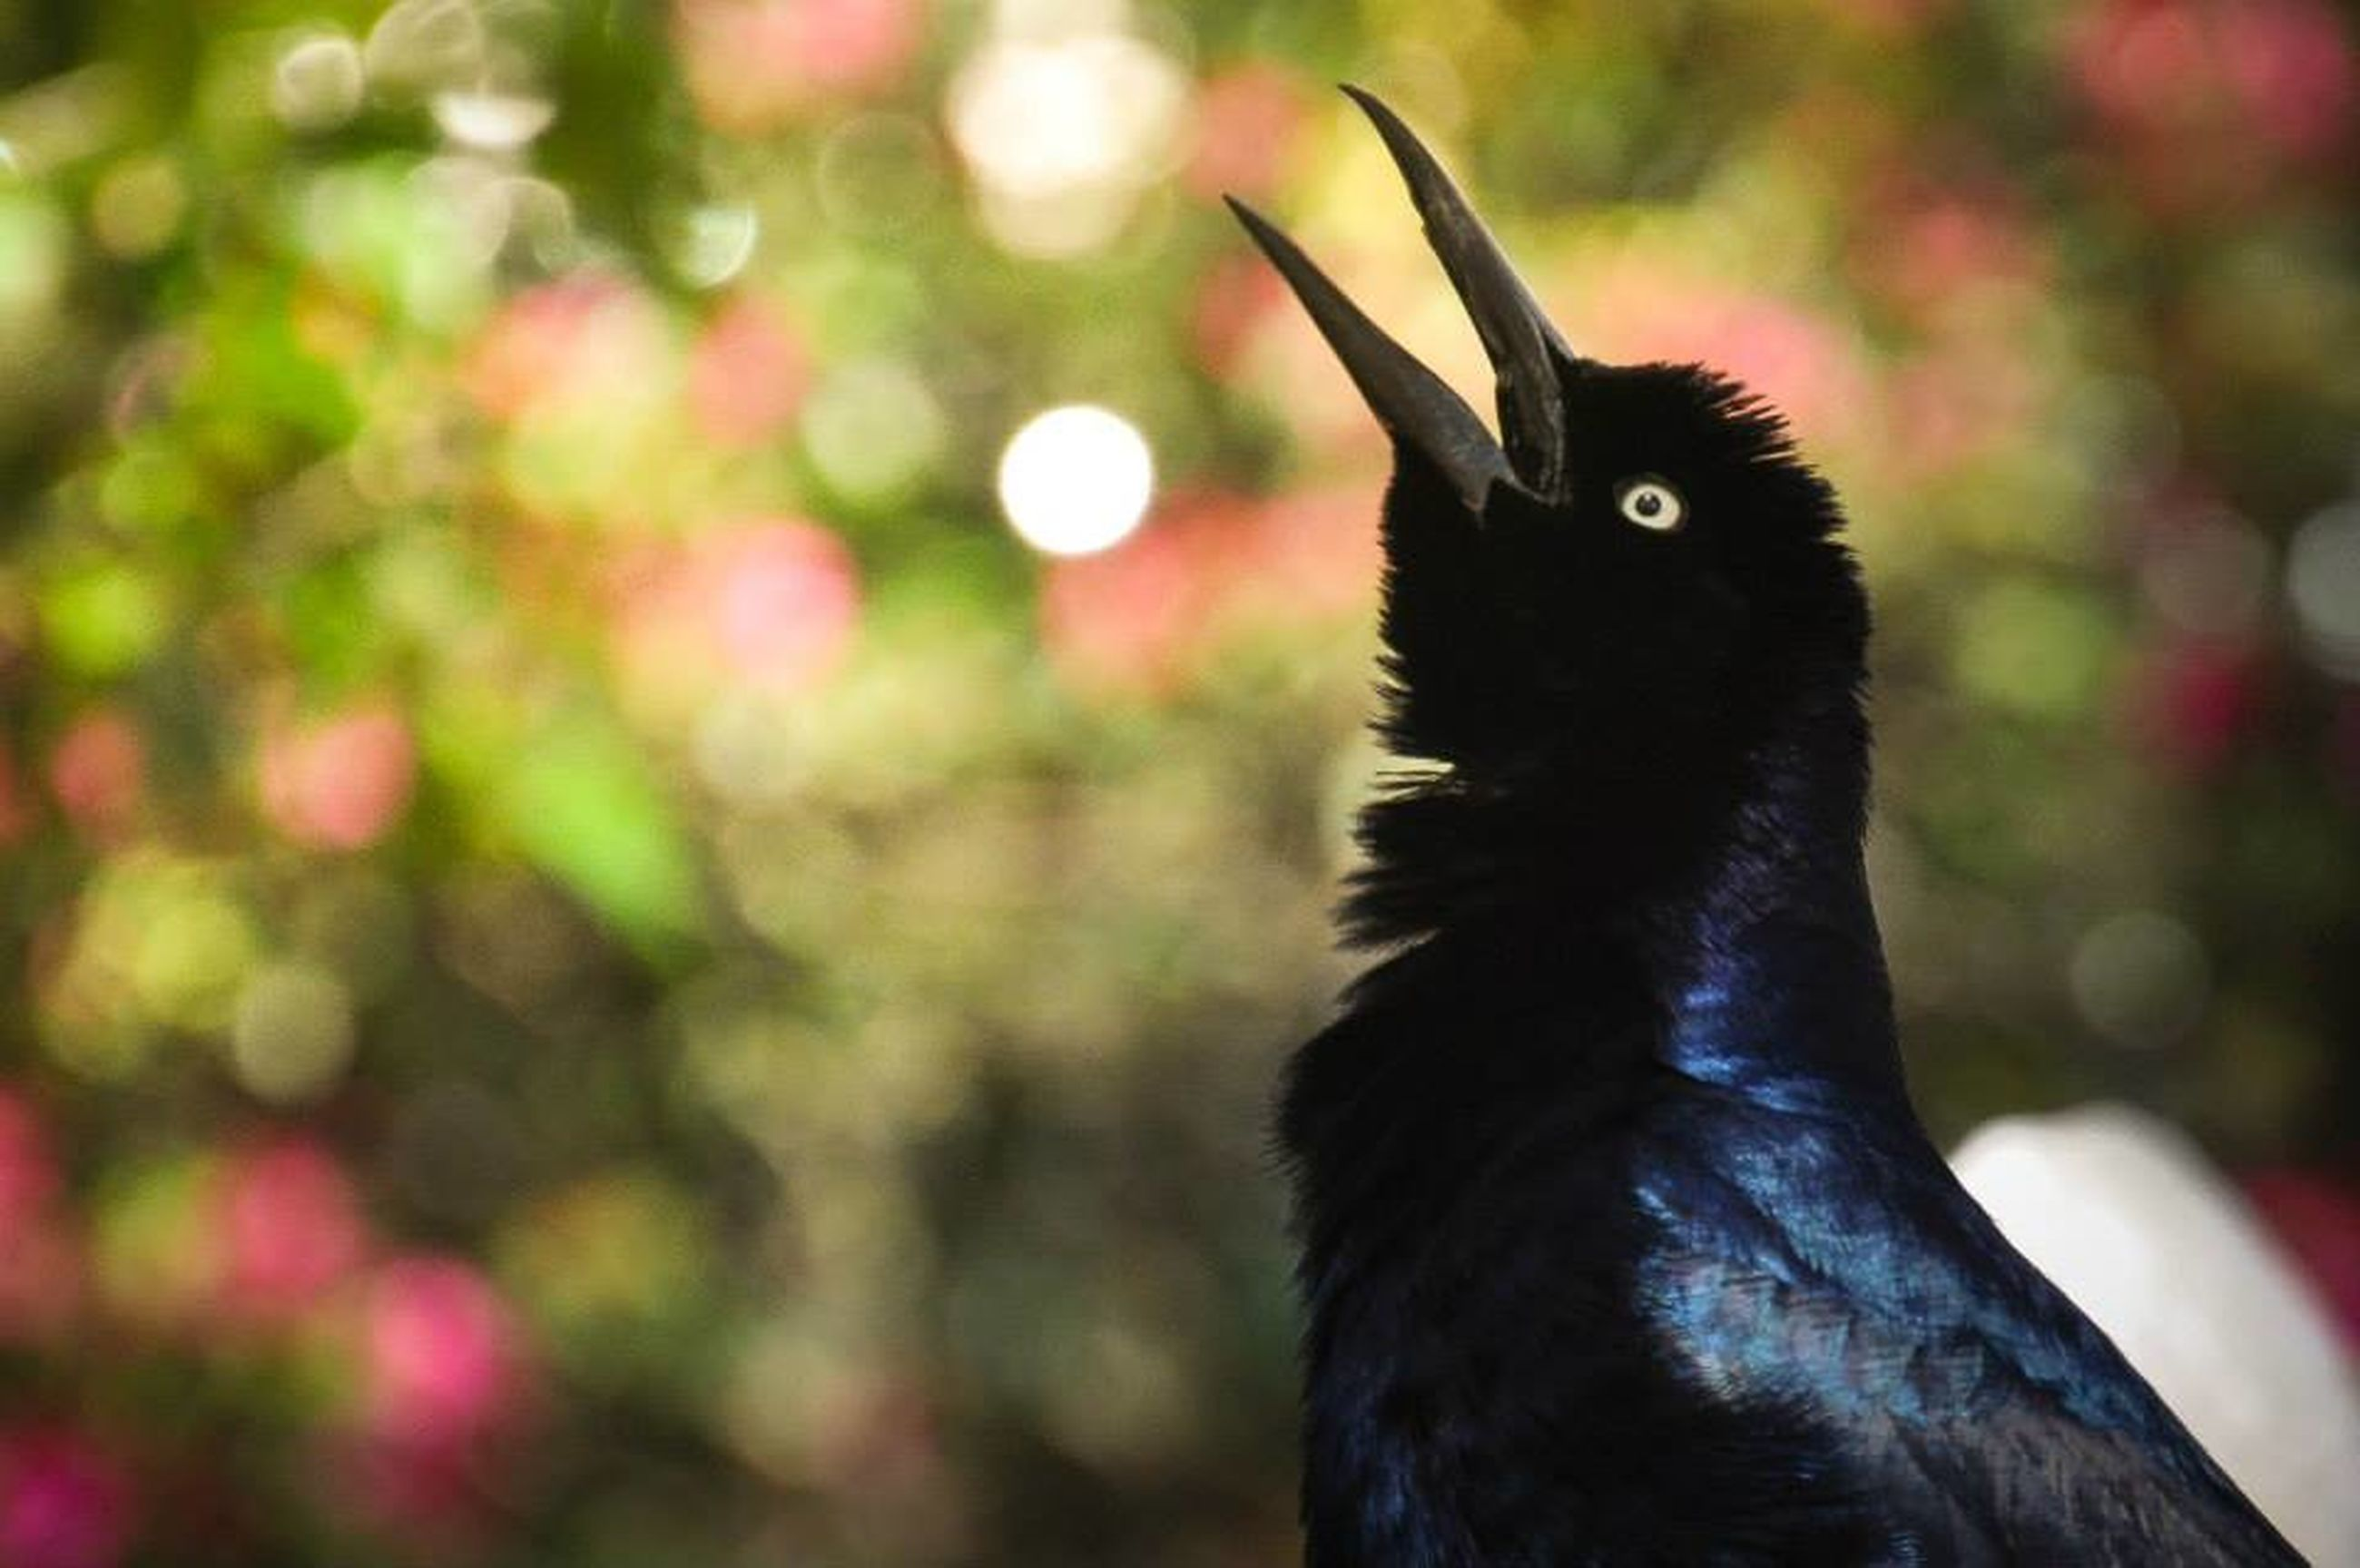 animal themes, one animal, focus on foreground, bird, close-up, animal head, animals in the wild, animal body part, wildlife, black color, beak, looking away, nature, domestic animals, outdoors, no people, animal eye, day, alertness, portrait